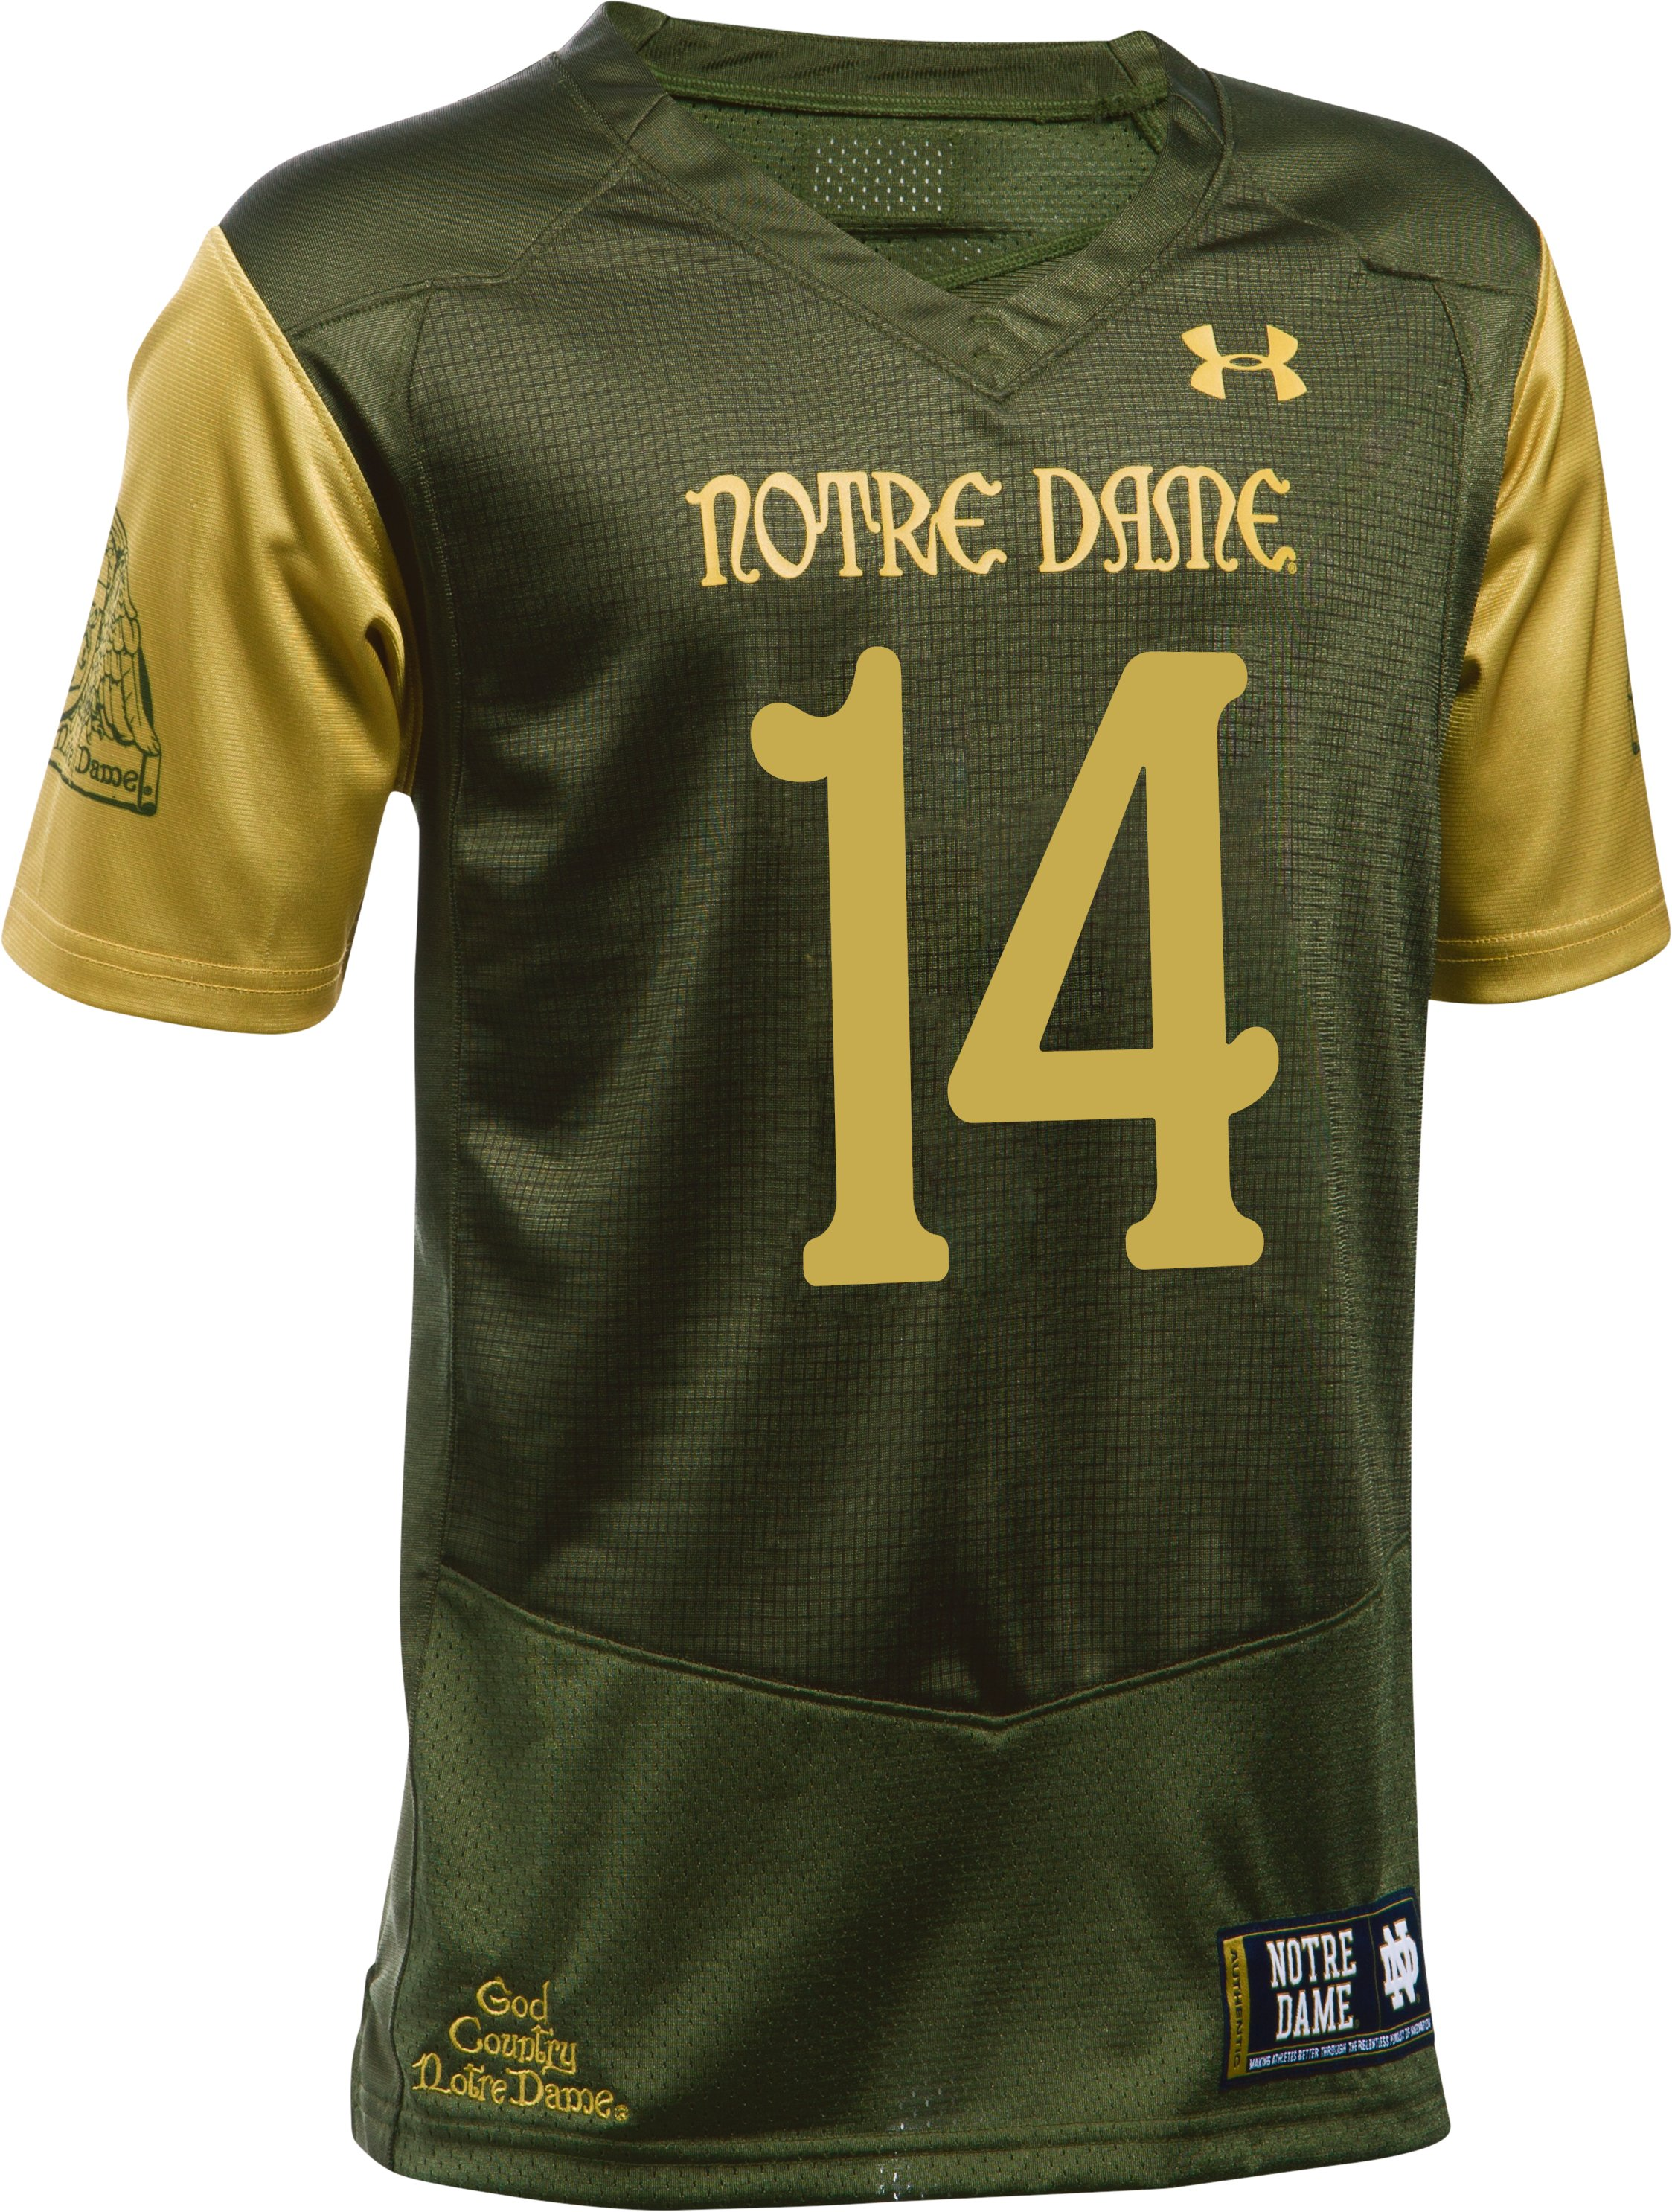 Kids' Notre Dame Shamrock Series UA Replica Football Jersey, Root,